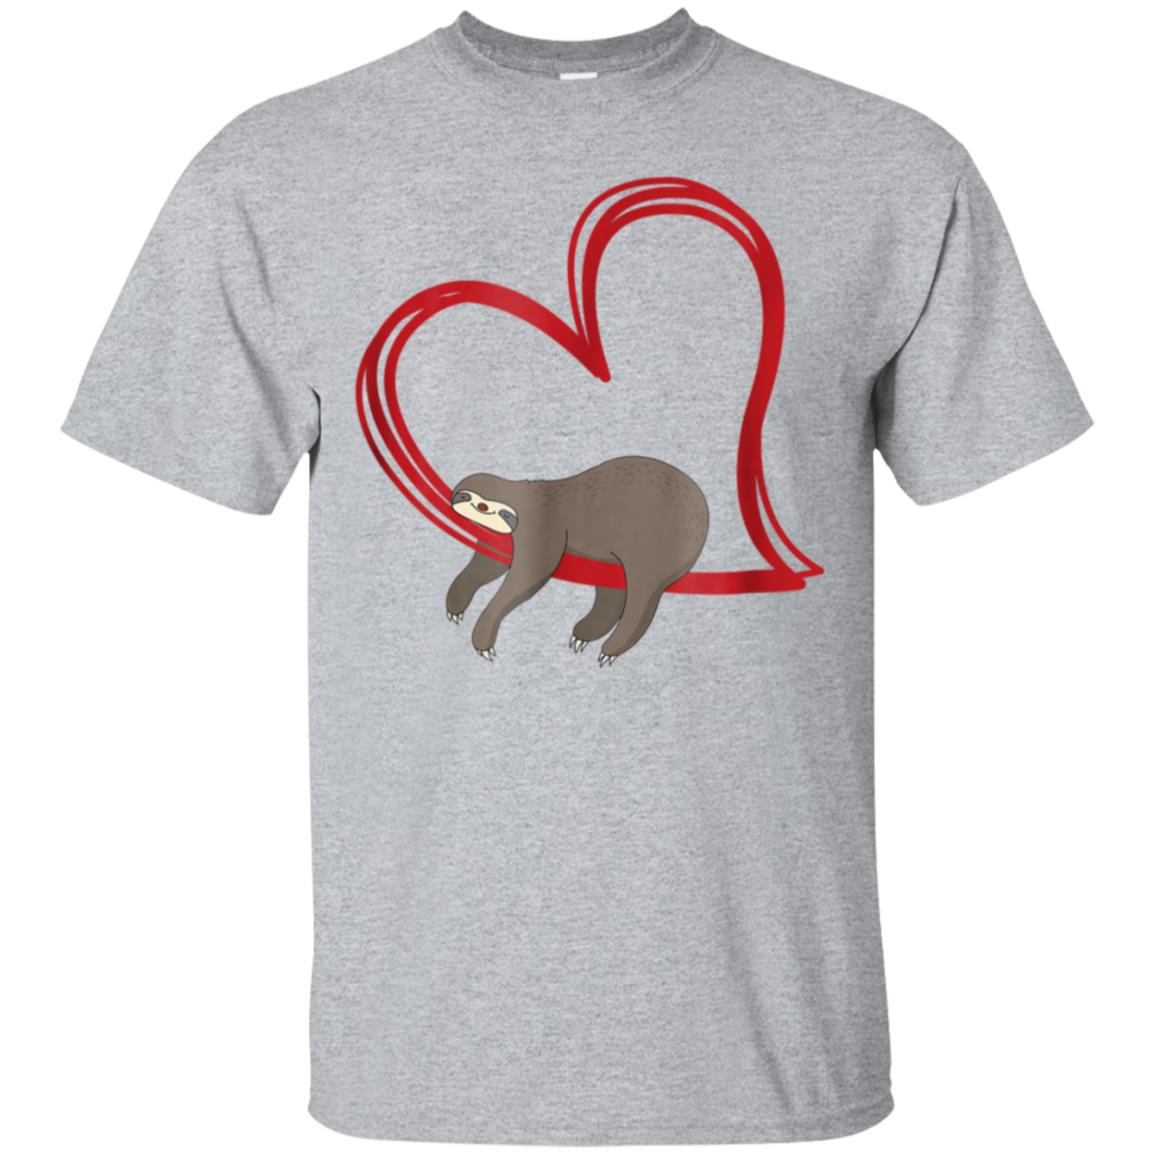 Sloth Shirt Girls Women Napping on Heart Tshirt Sloths Gifts 99promocode